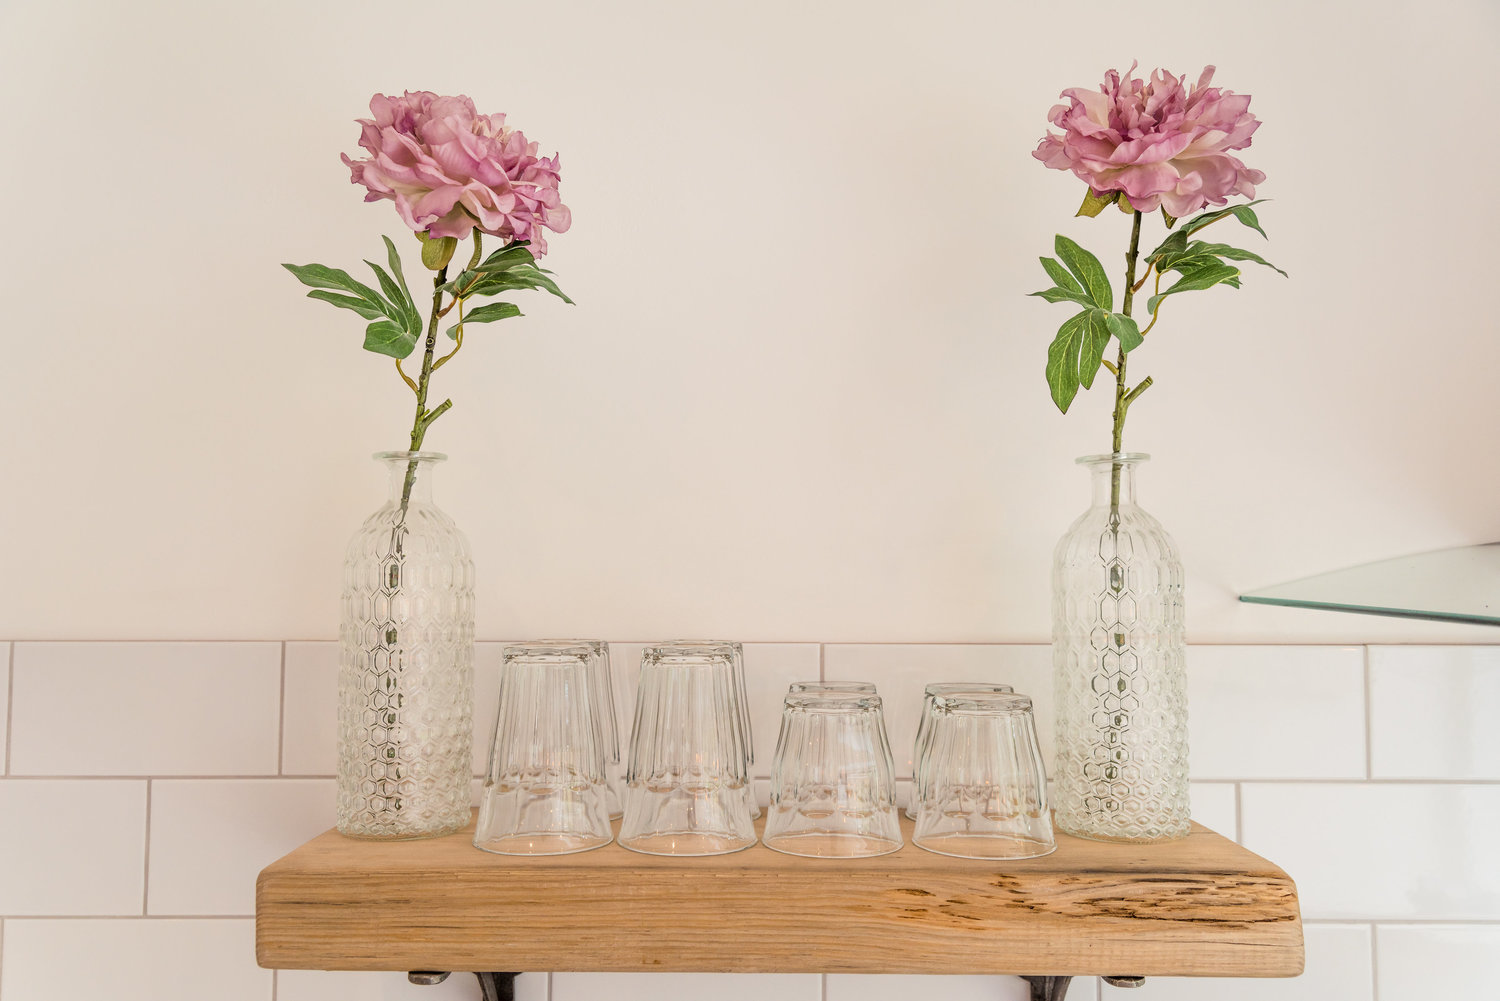 Vase & Cups on Kitchen Shelf